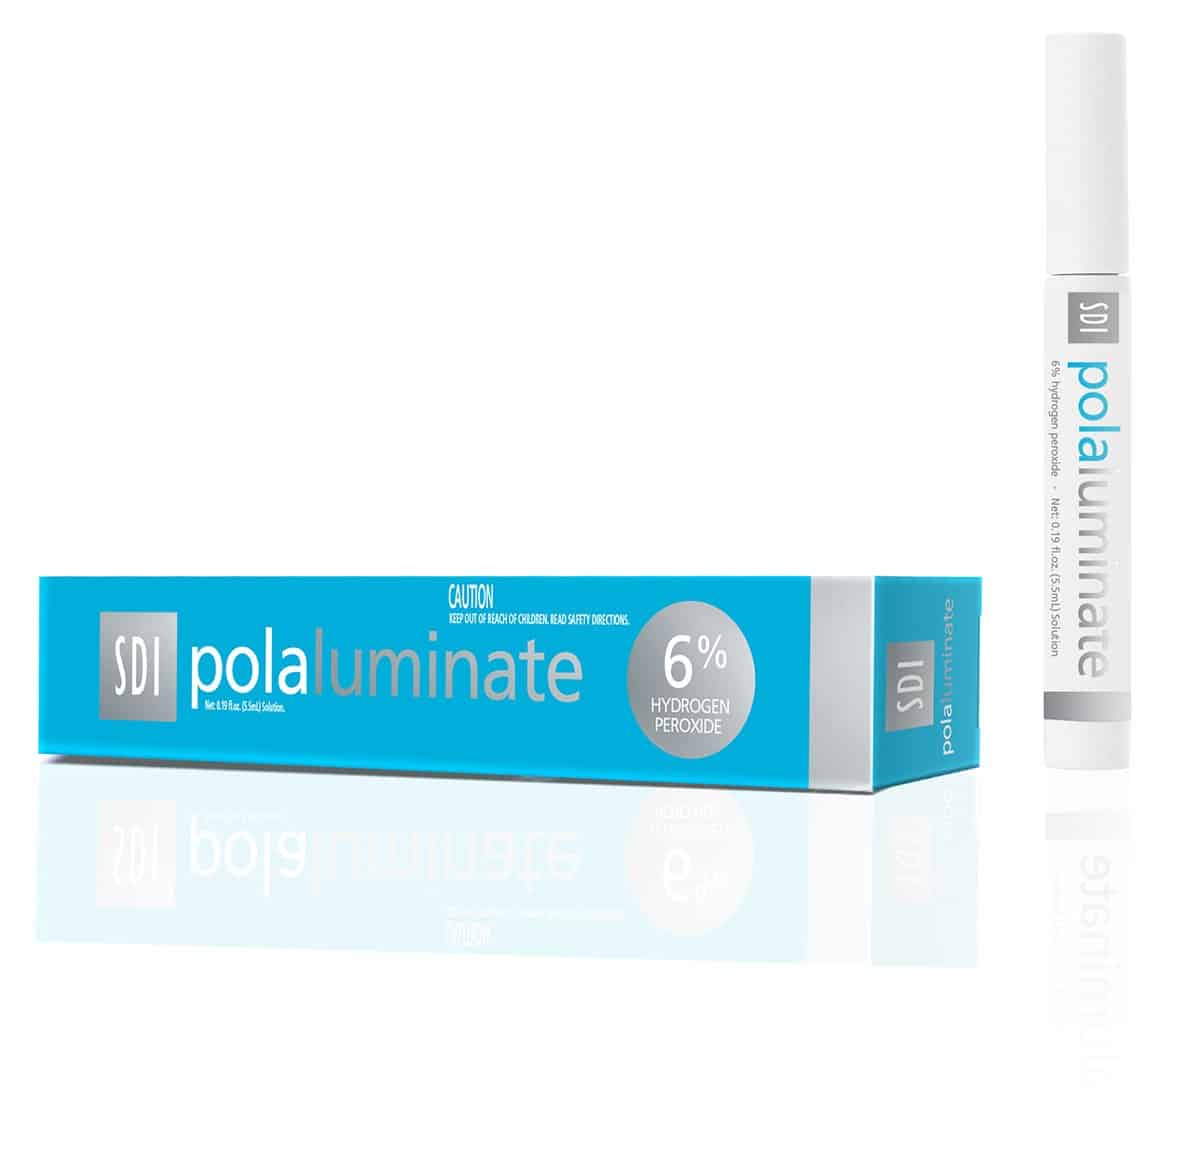 pola luiminate teeth whitening pen